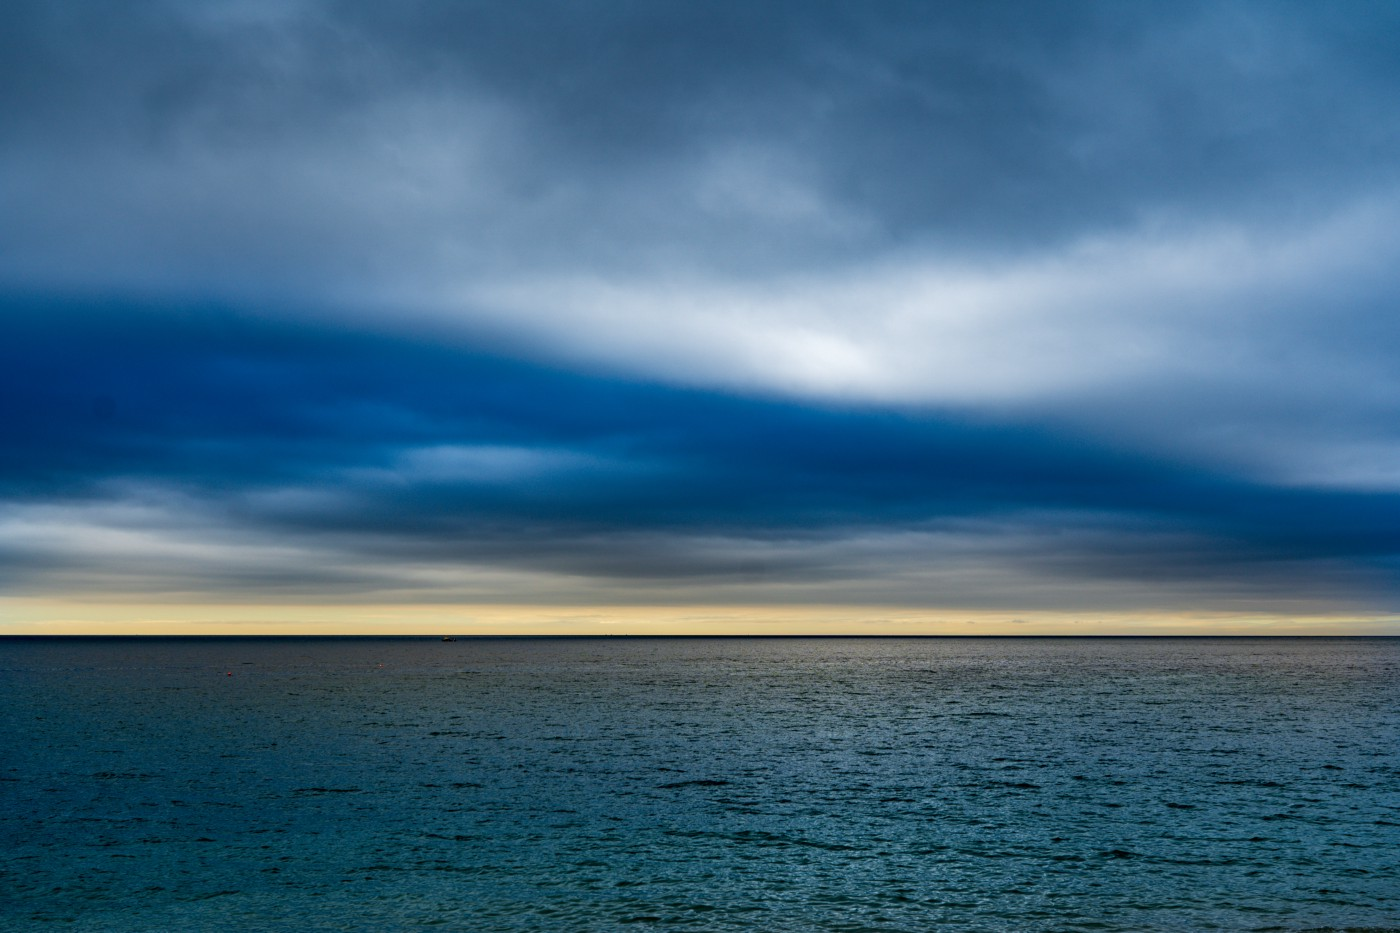 Photo of the horizon with dark clouds and sun peaking out from behind.